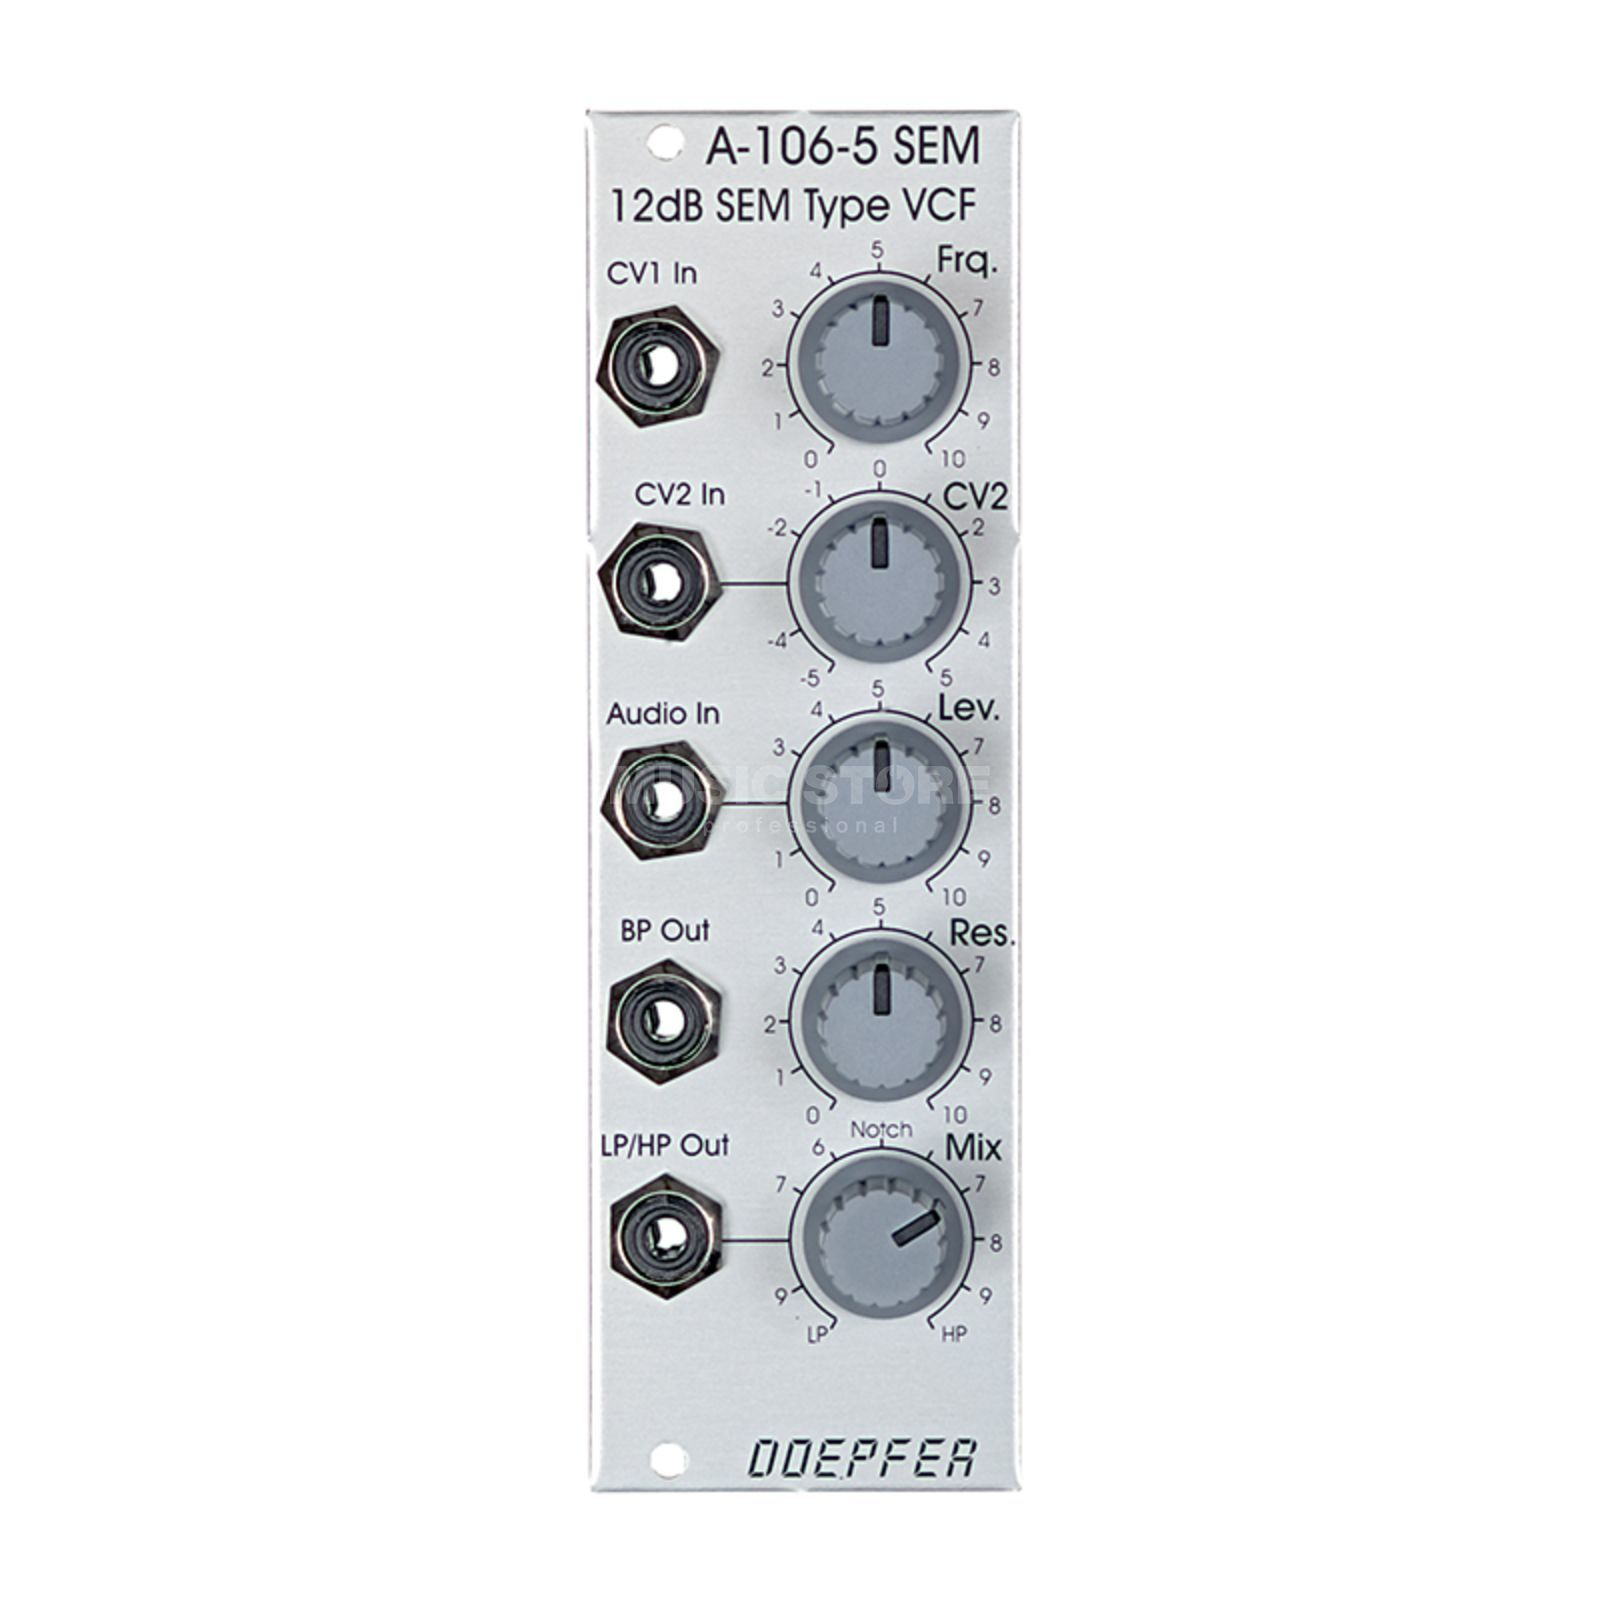 Doepfer A-106-5 12dB SEM Multimode-Filter Product Image